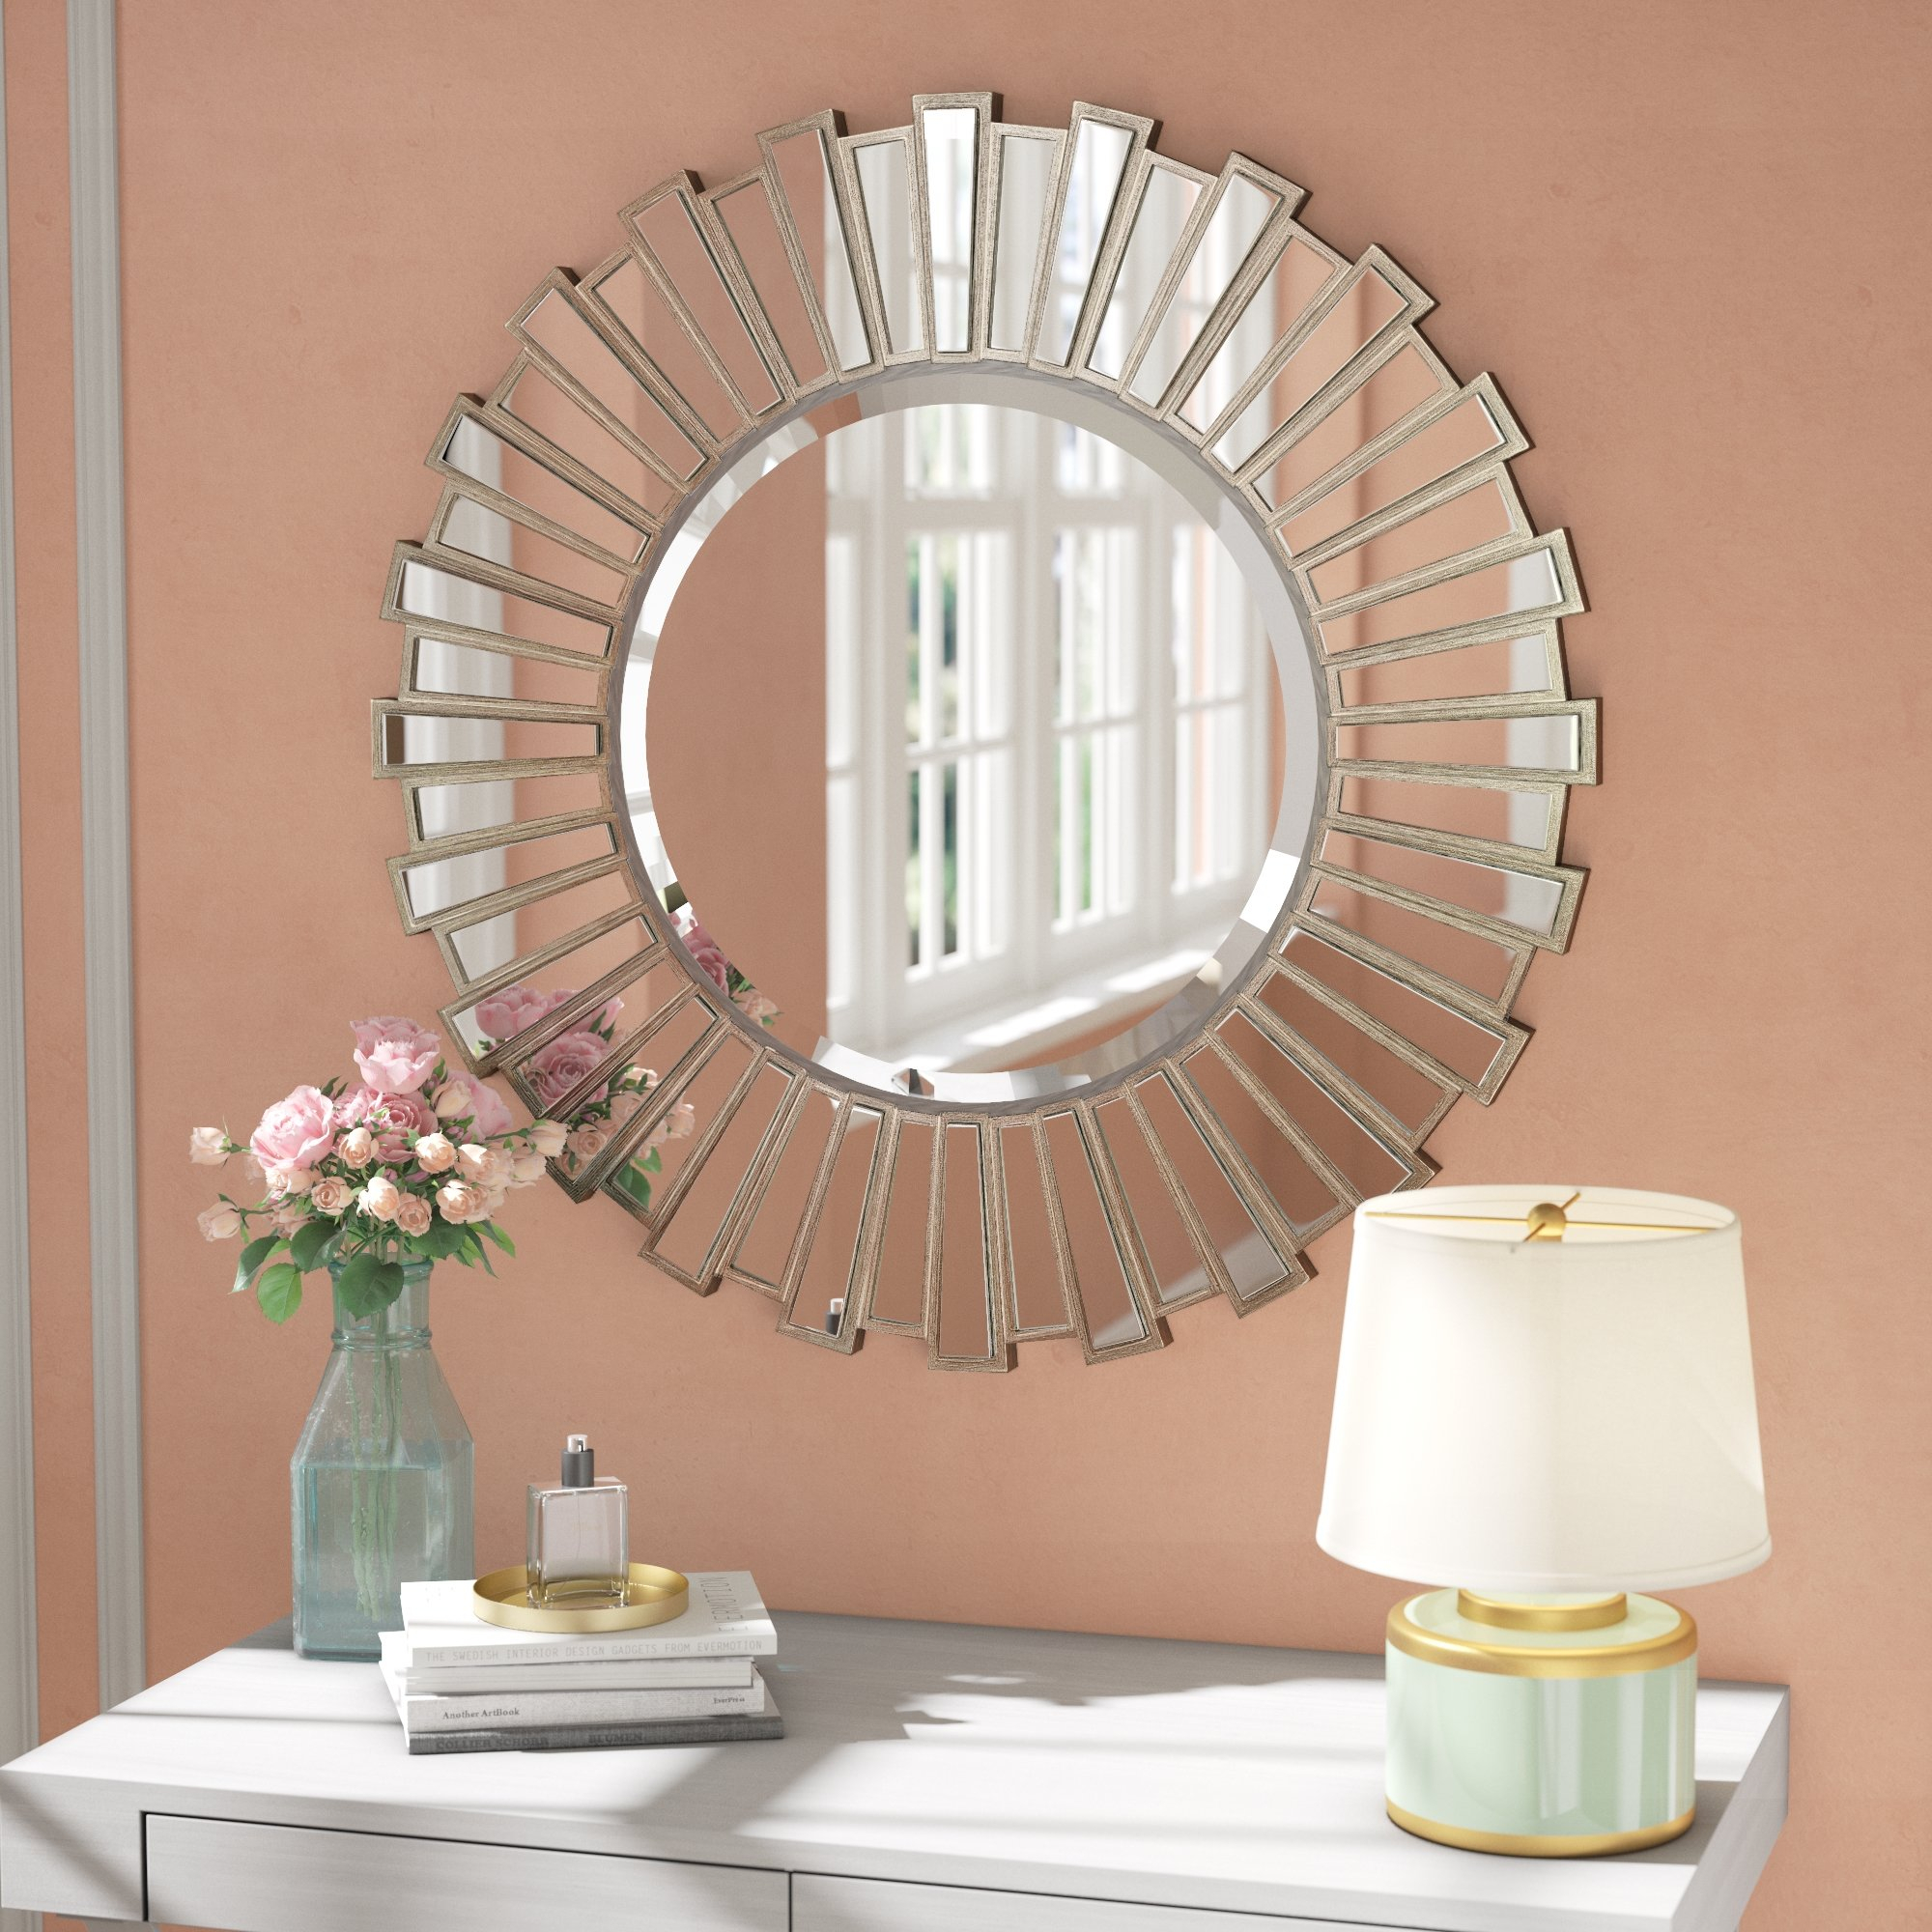 "Large & Oversized (Over 32"" High) Sunburst Mirrors You'll throughout Jarrod Sunburst Accent Mirrors (Image 16 of 30)"